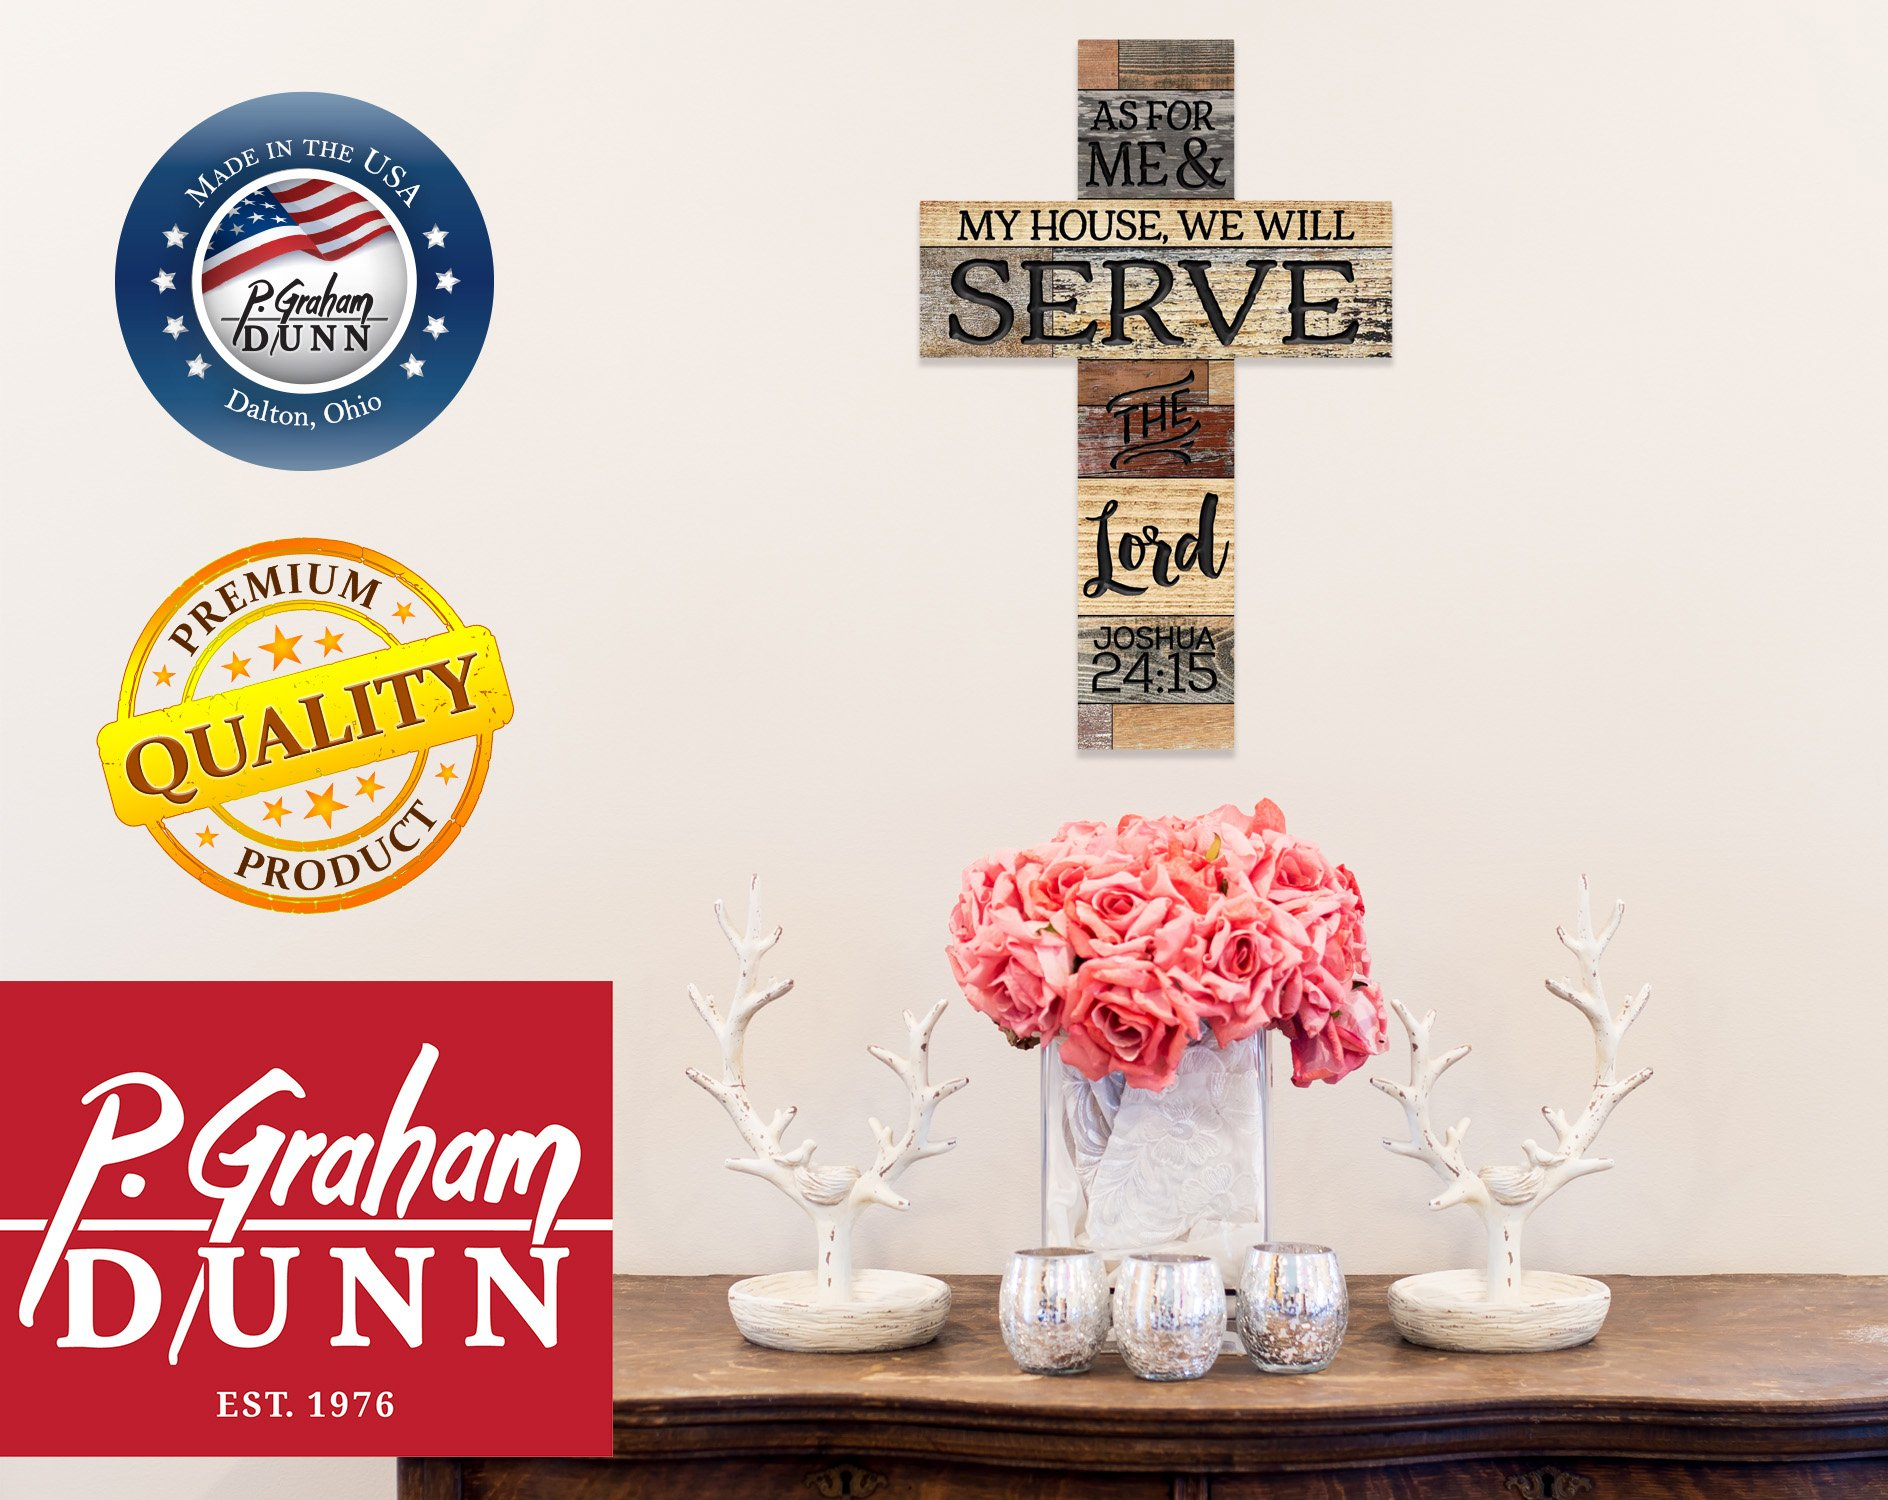 P. Graham Dunn As for Me & My House We Will Serve The Lord 36 x 24 Wood Wall Art Plaque Cross by P. Graham Dunn (Image #3)